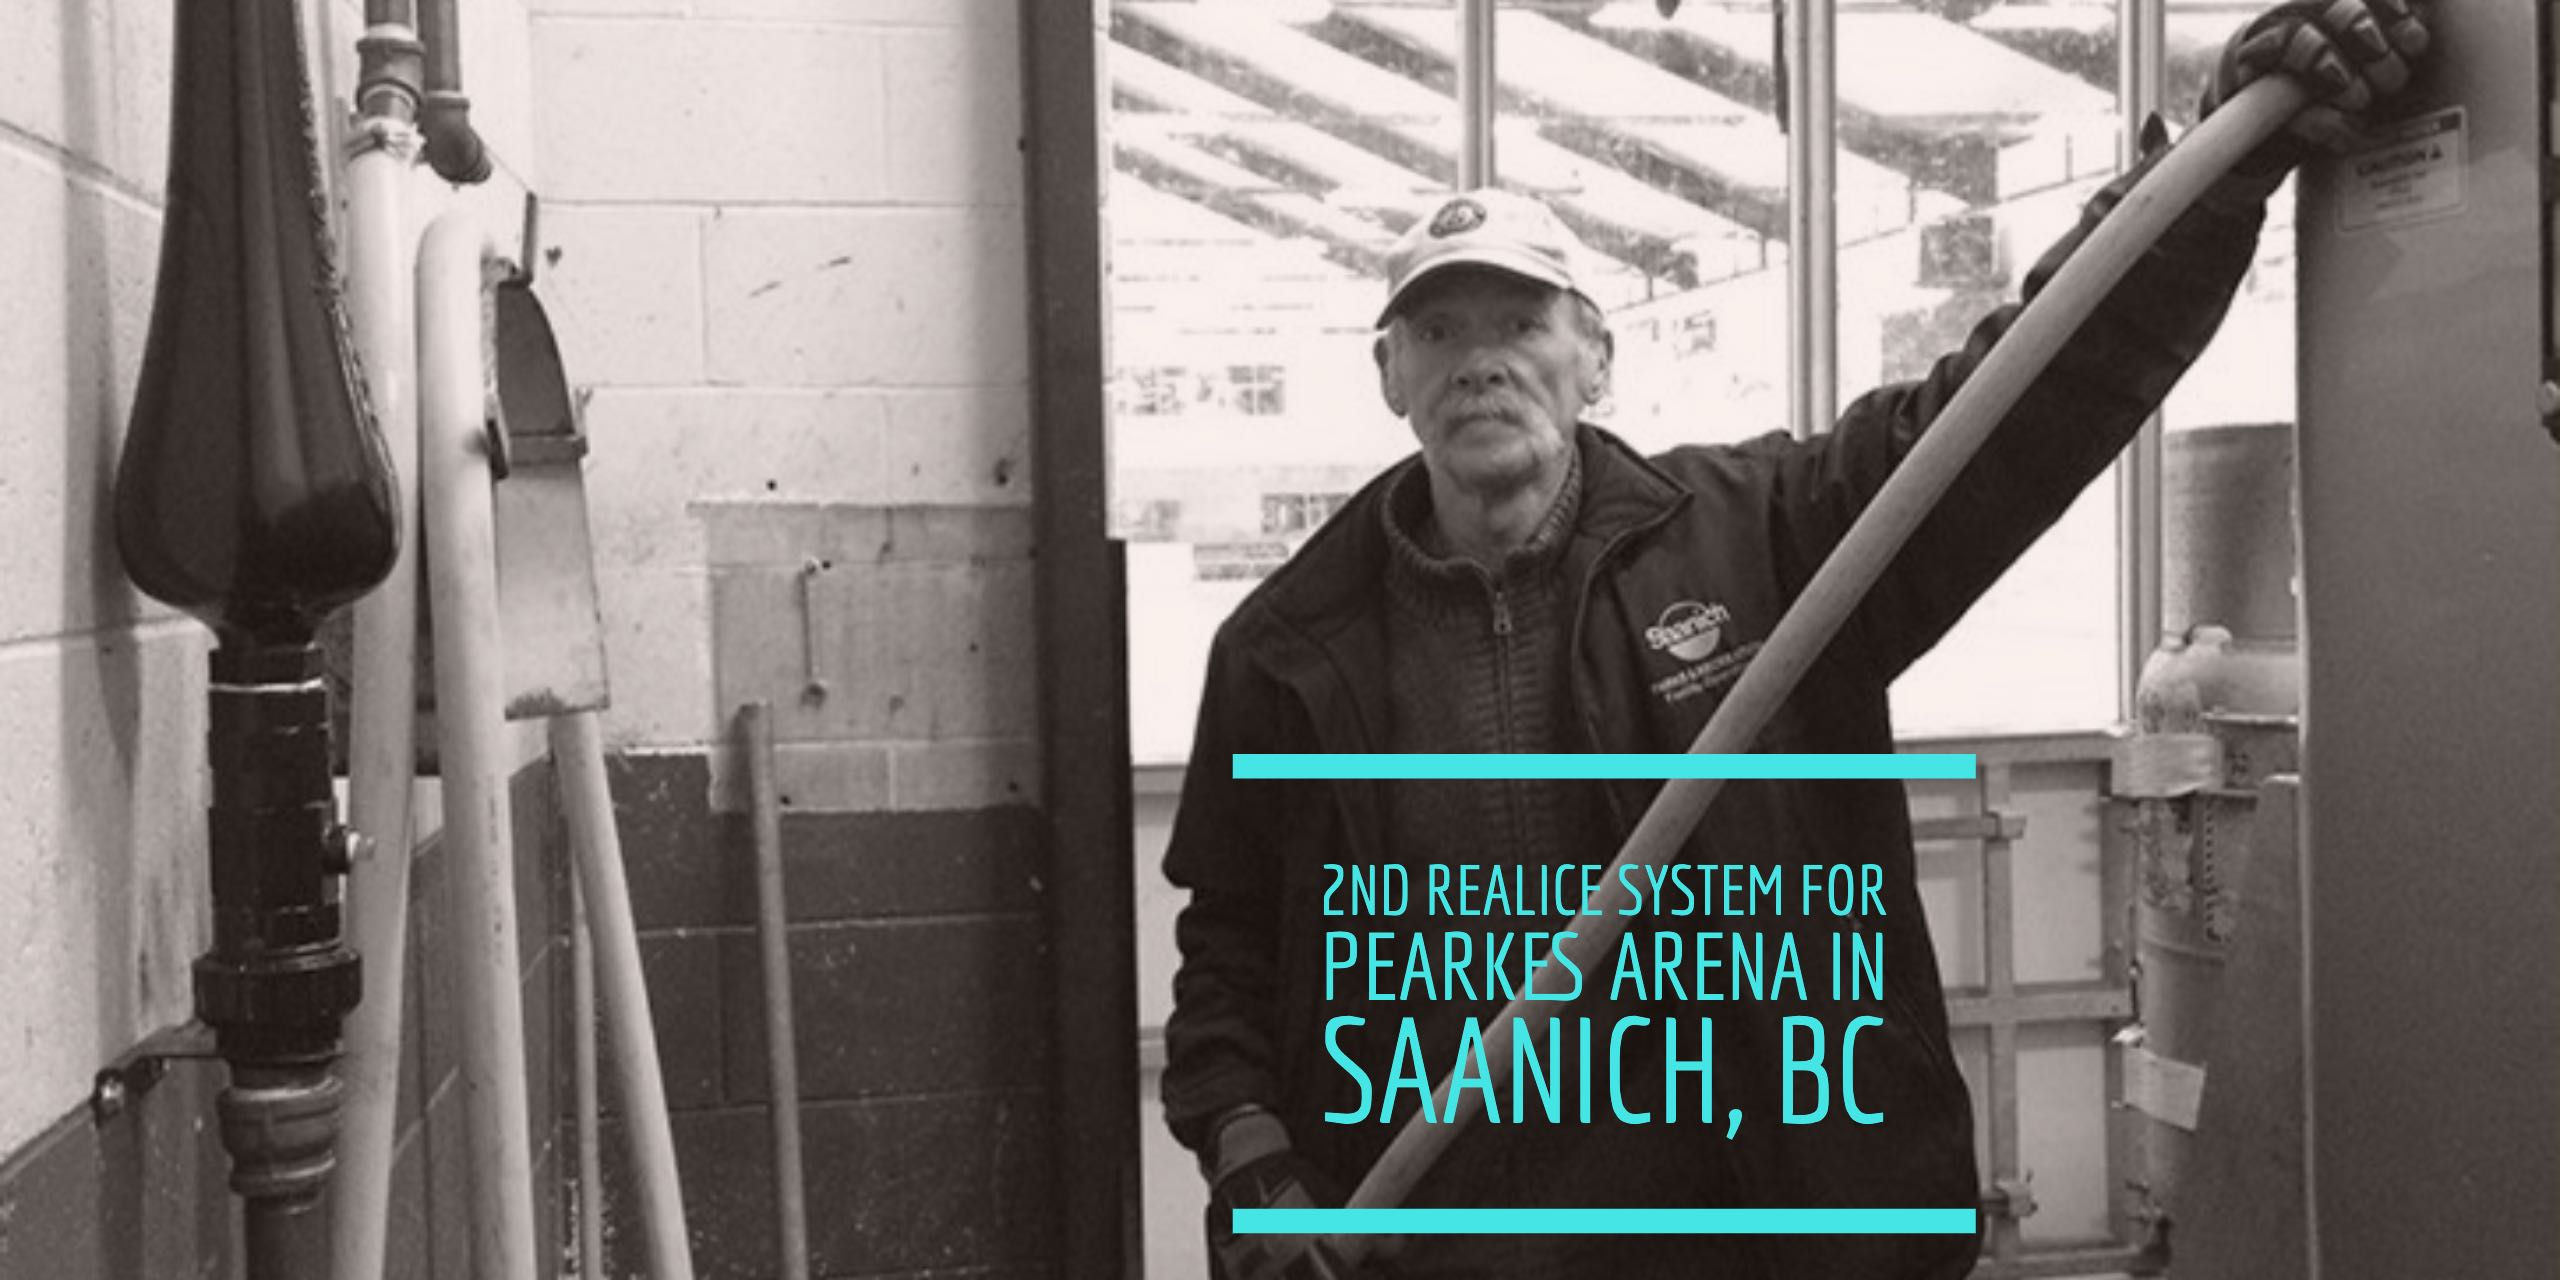 Mike Ross uses a hose connected to the black REALice system at the Gold rink. Now, the arena's Green rink will be equipped also. Photo: Saanich News